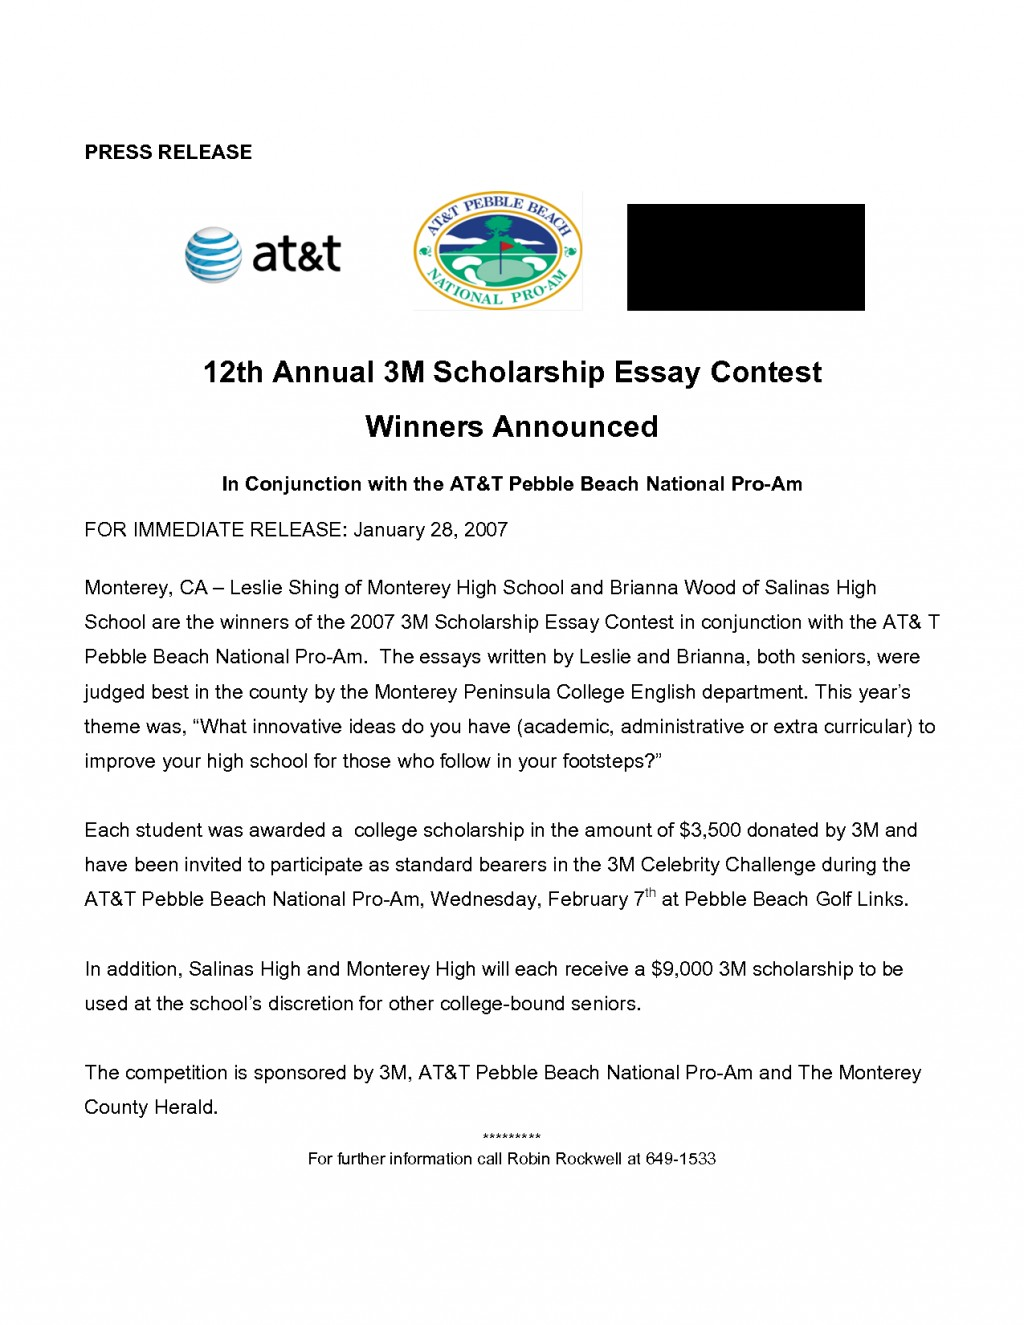 002 Essay Scholarships For High School Students Example Scholarship Application Help Contests Juniors 3 No Incredible Free Writing Class Of 2020 Large